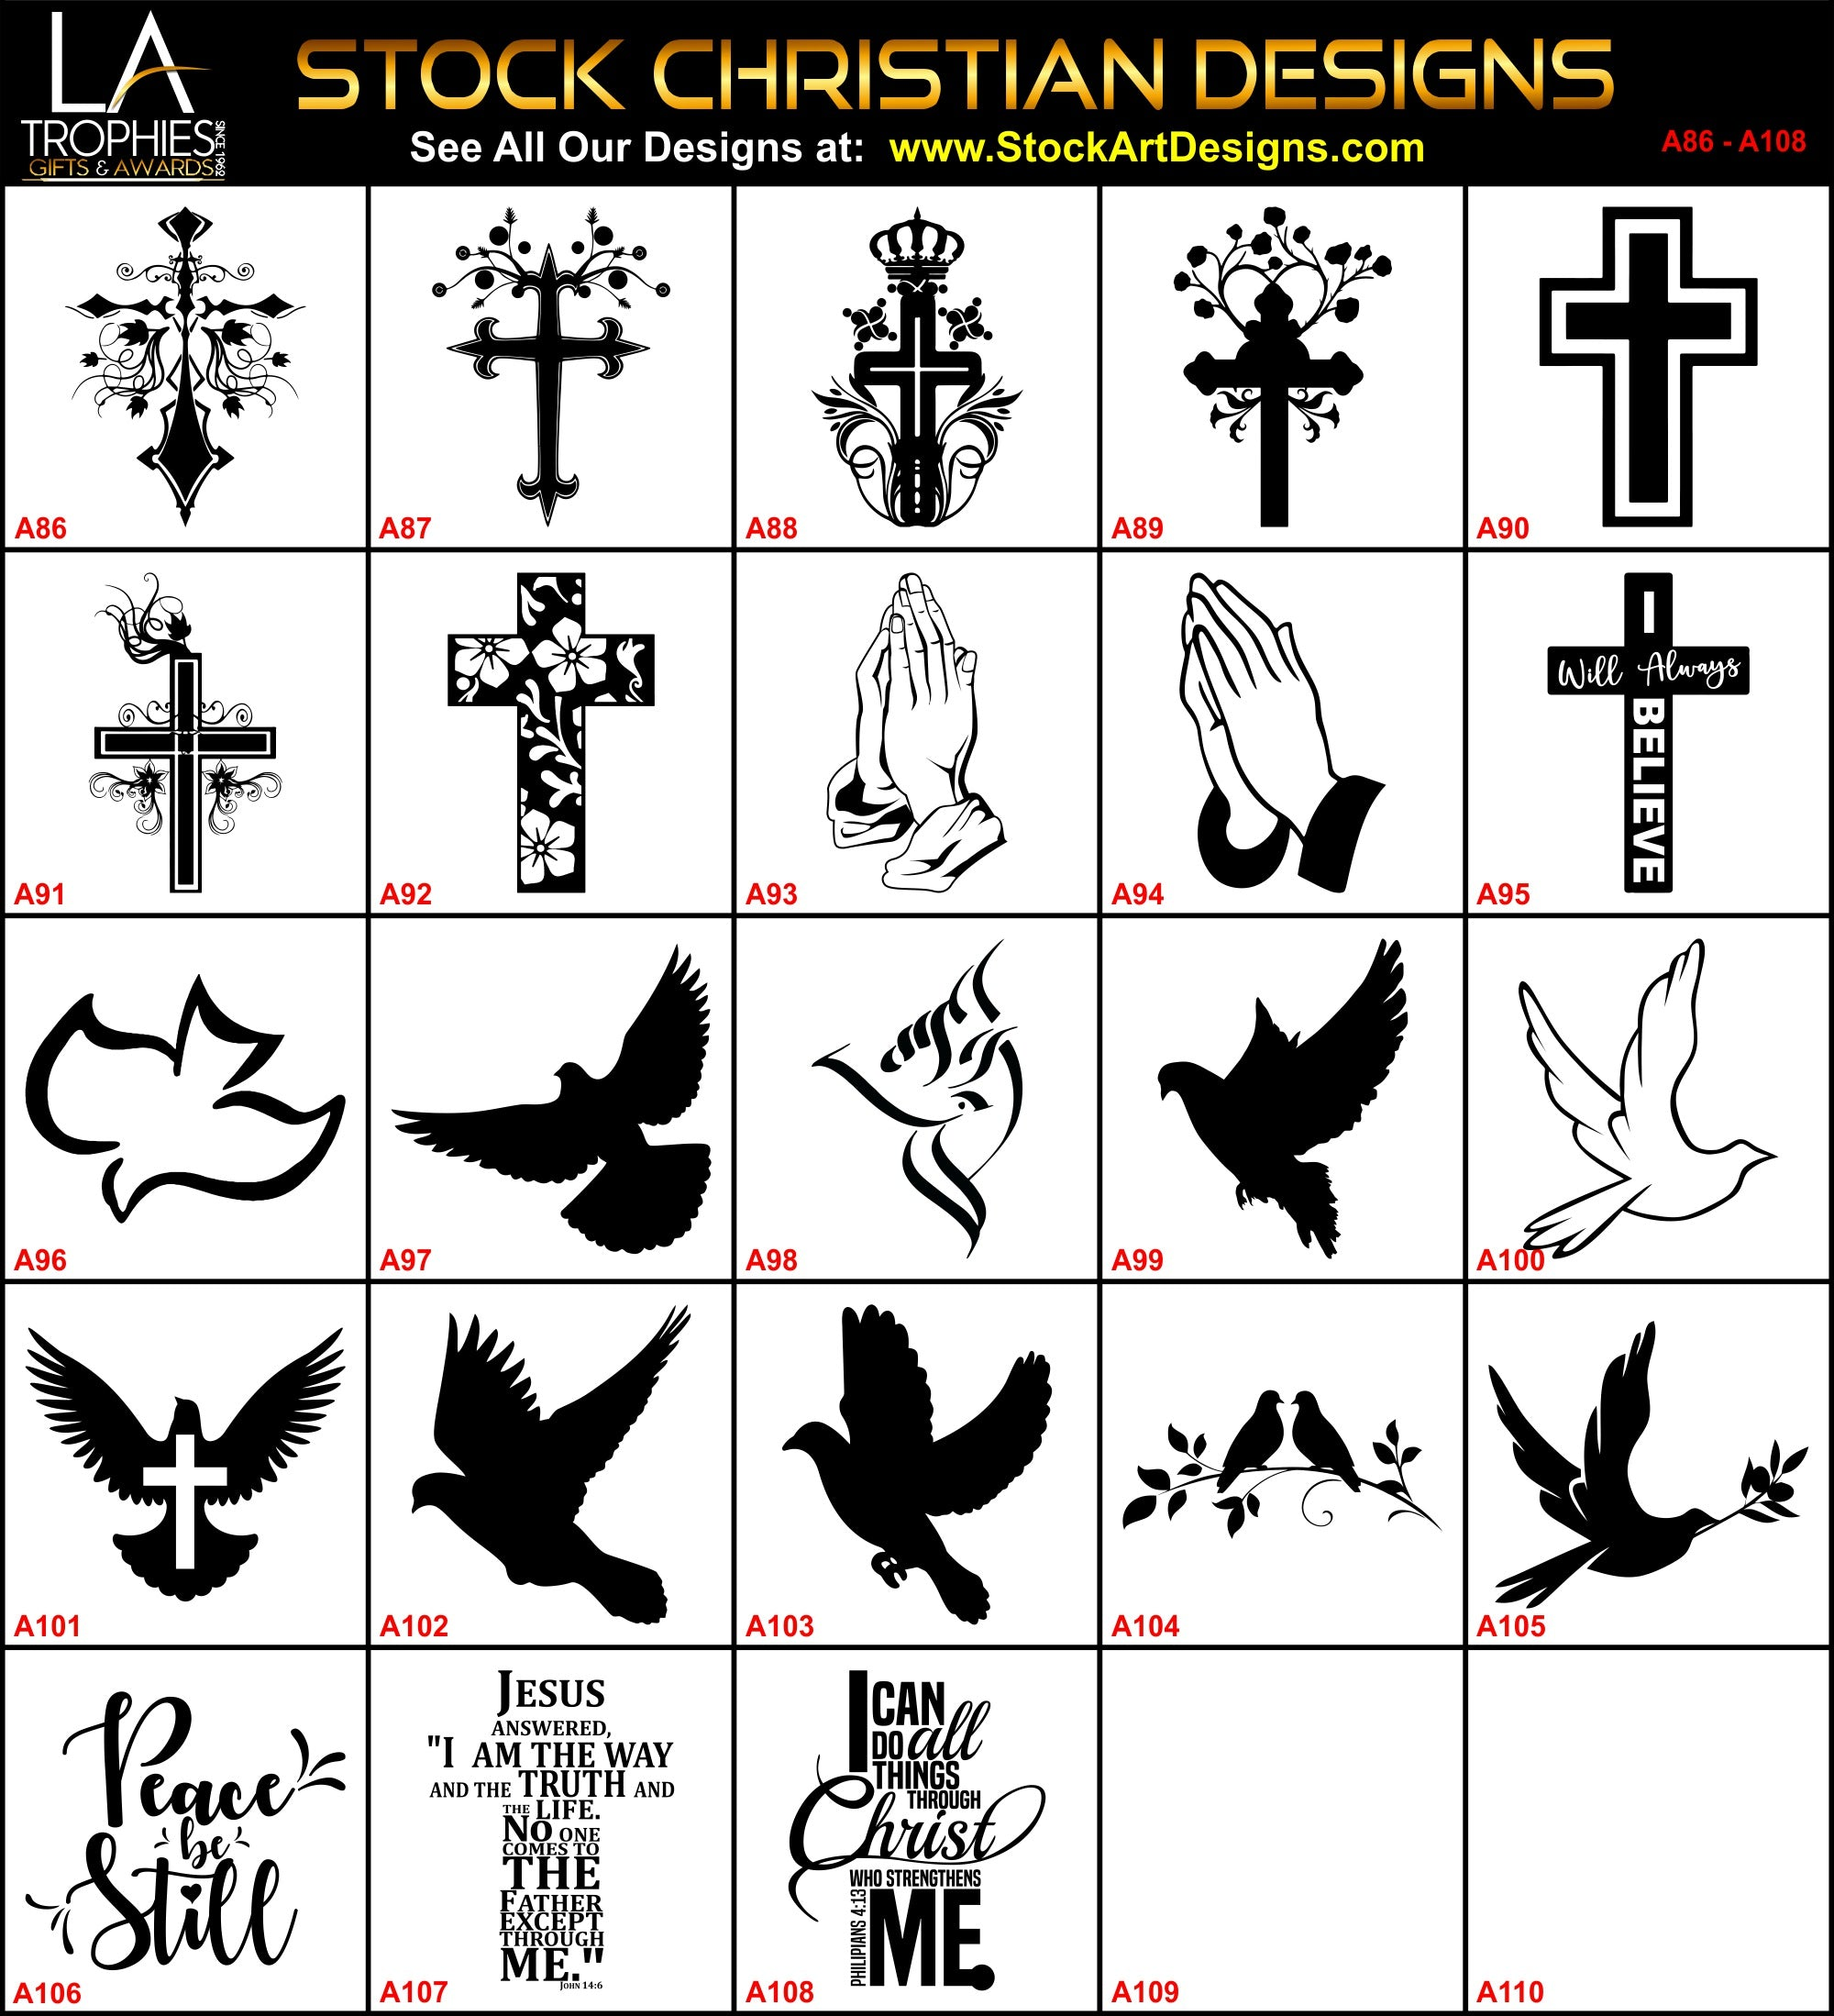 LA Trophies - A86-A108 - Stock Christian Designs